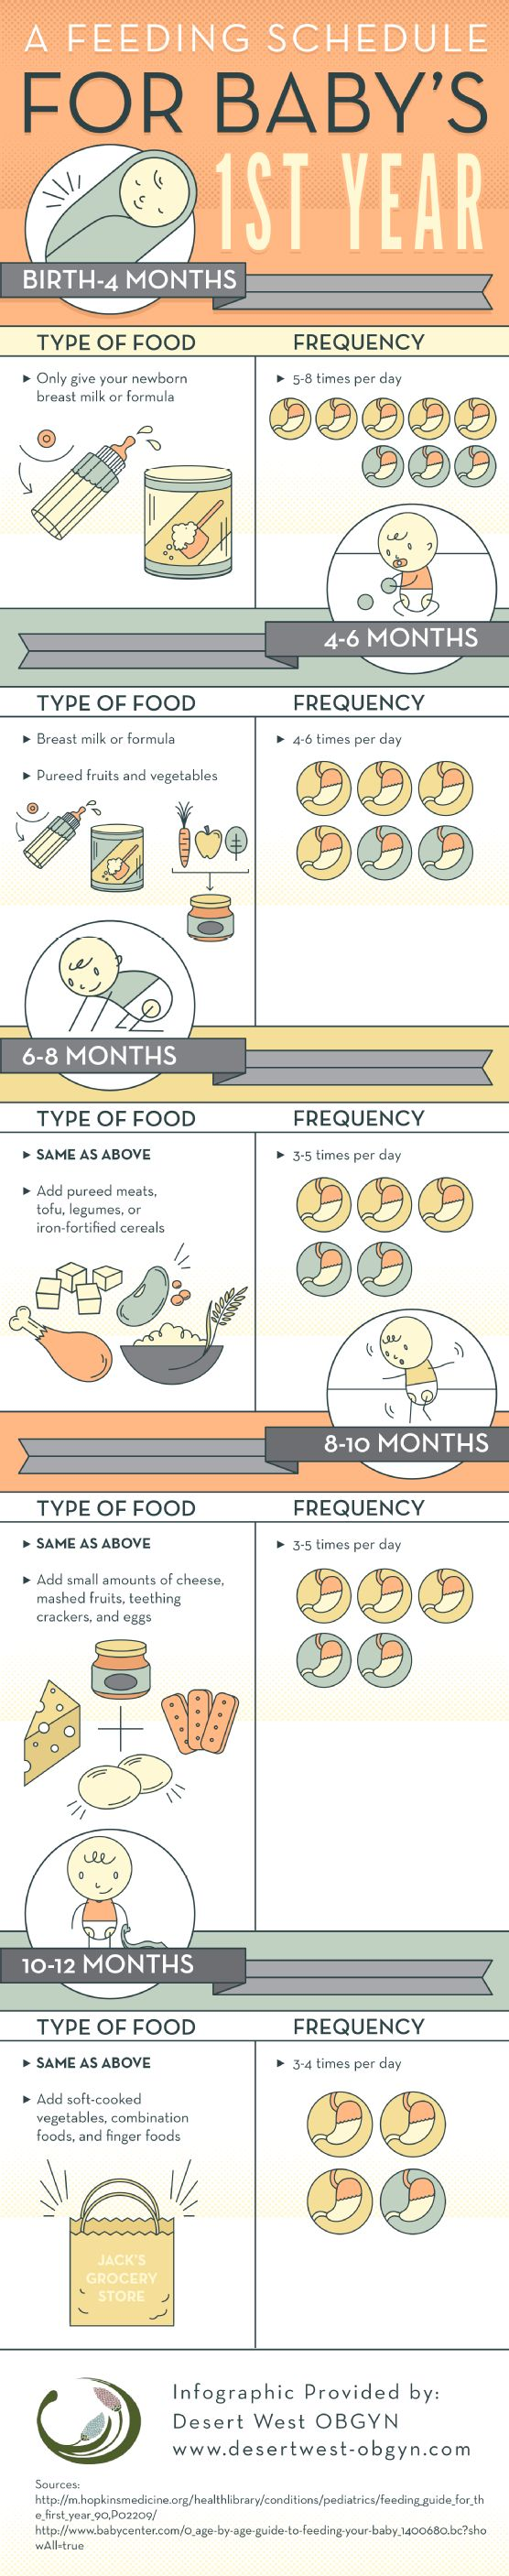 infographic to learn more about what to feed your baby